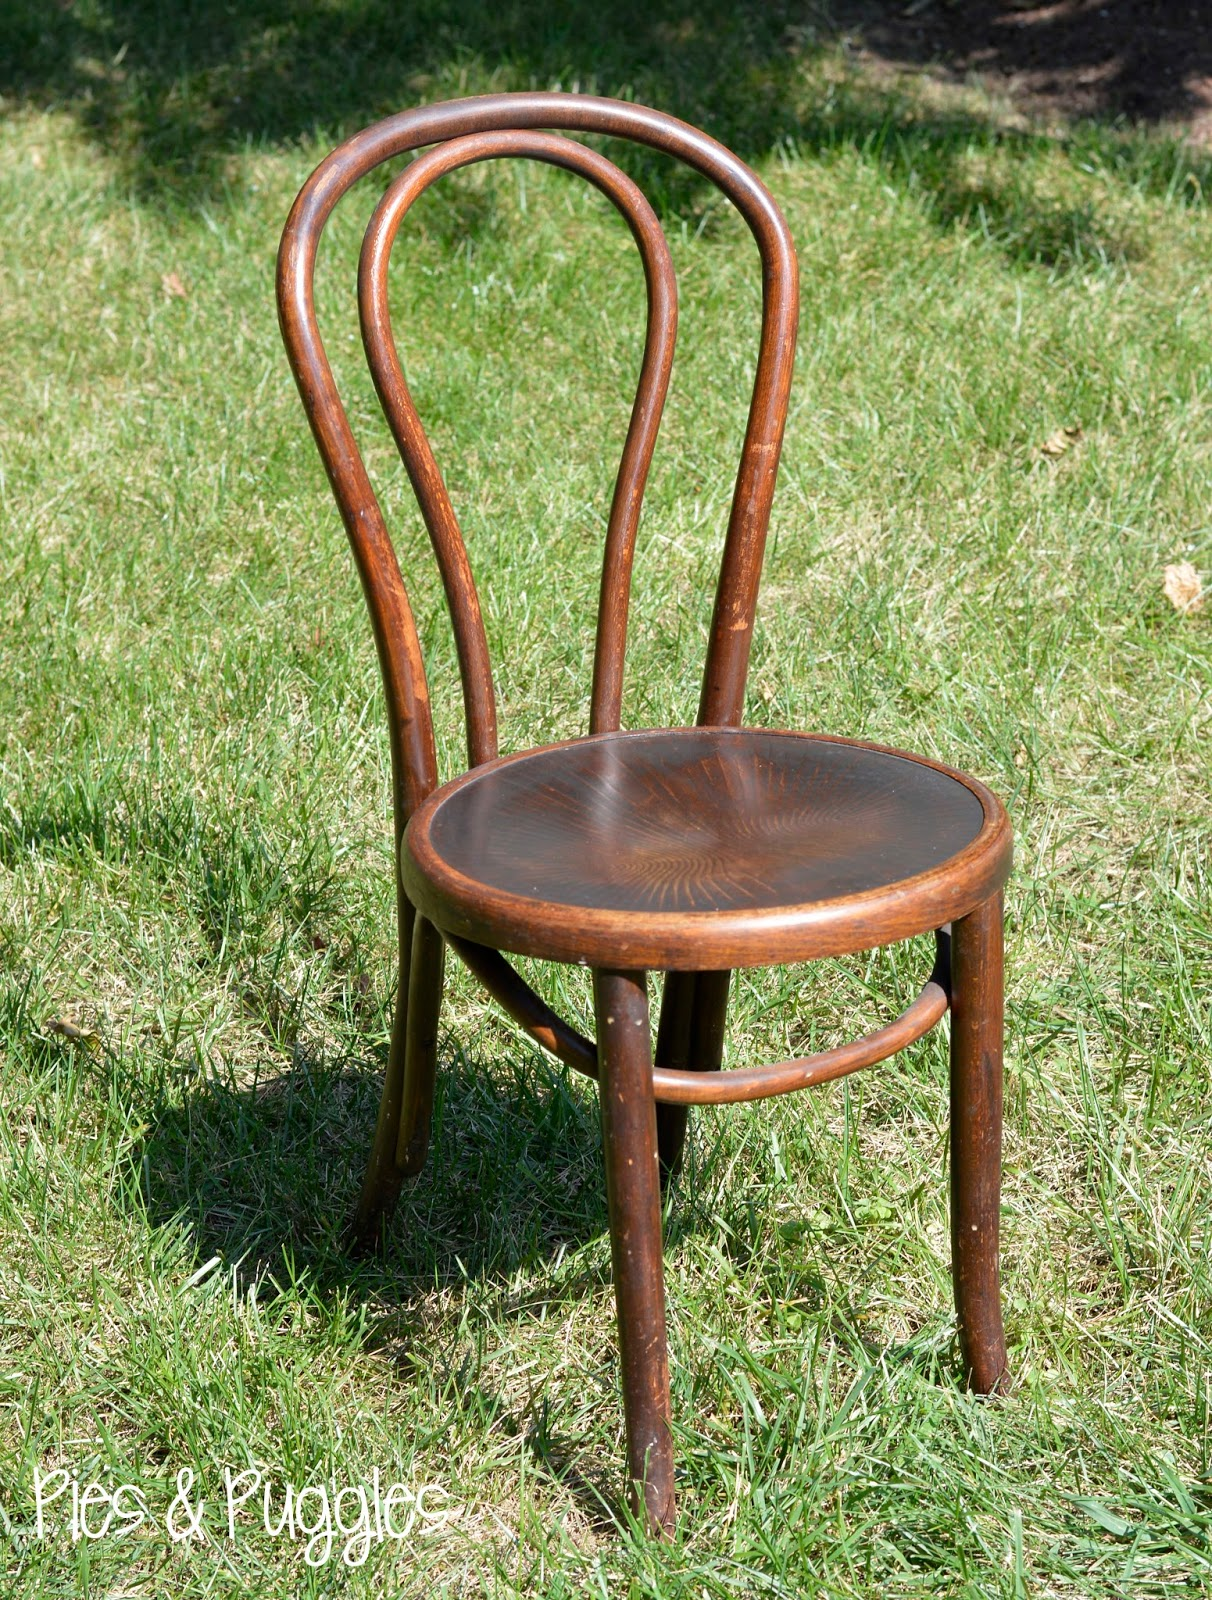 Vintage Bentwood Chairs Office Chair Under 2000 Pies And Puggles Diy Painted